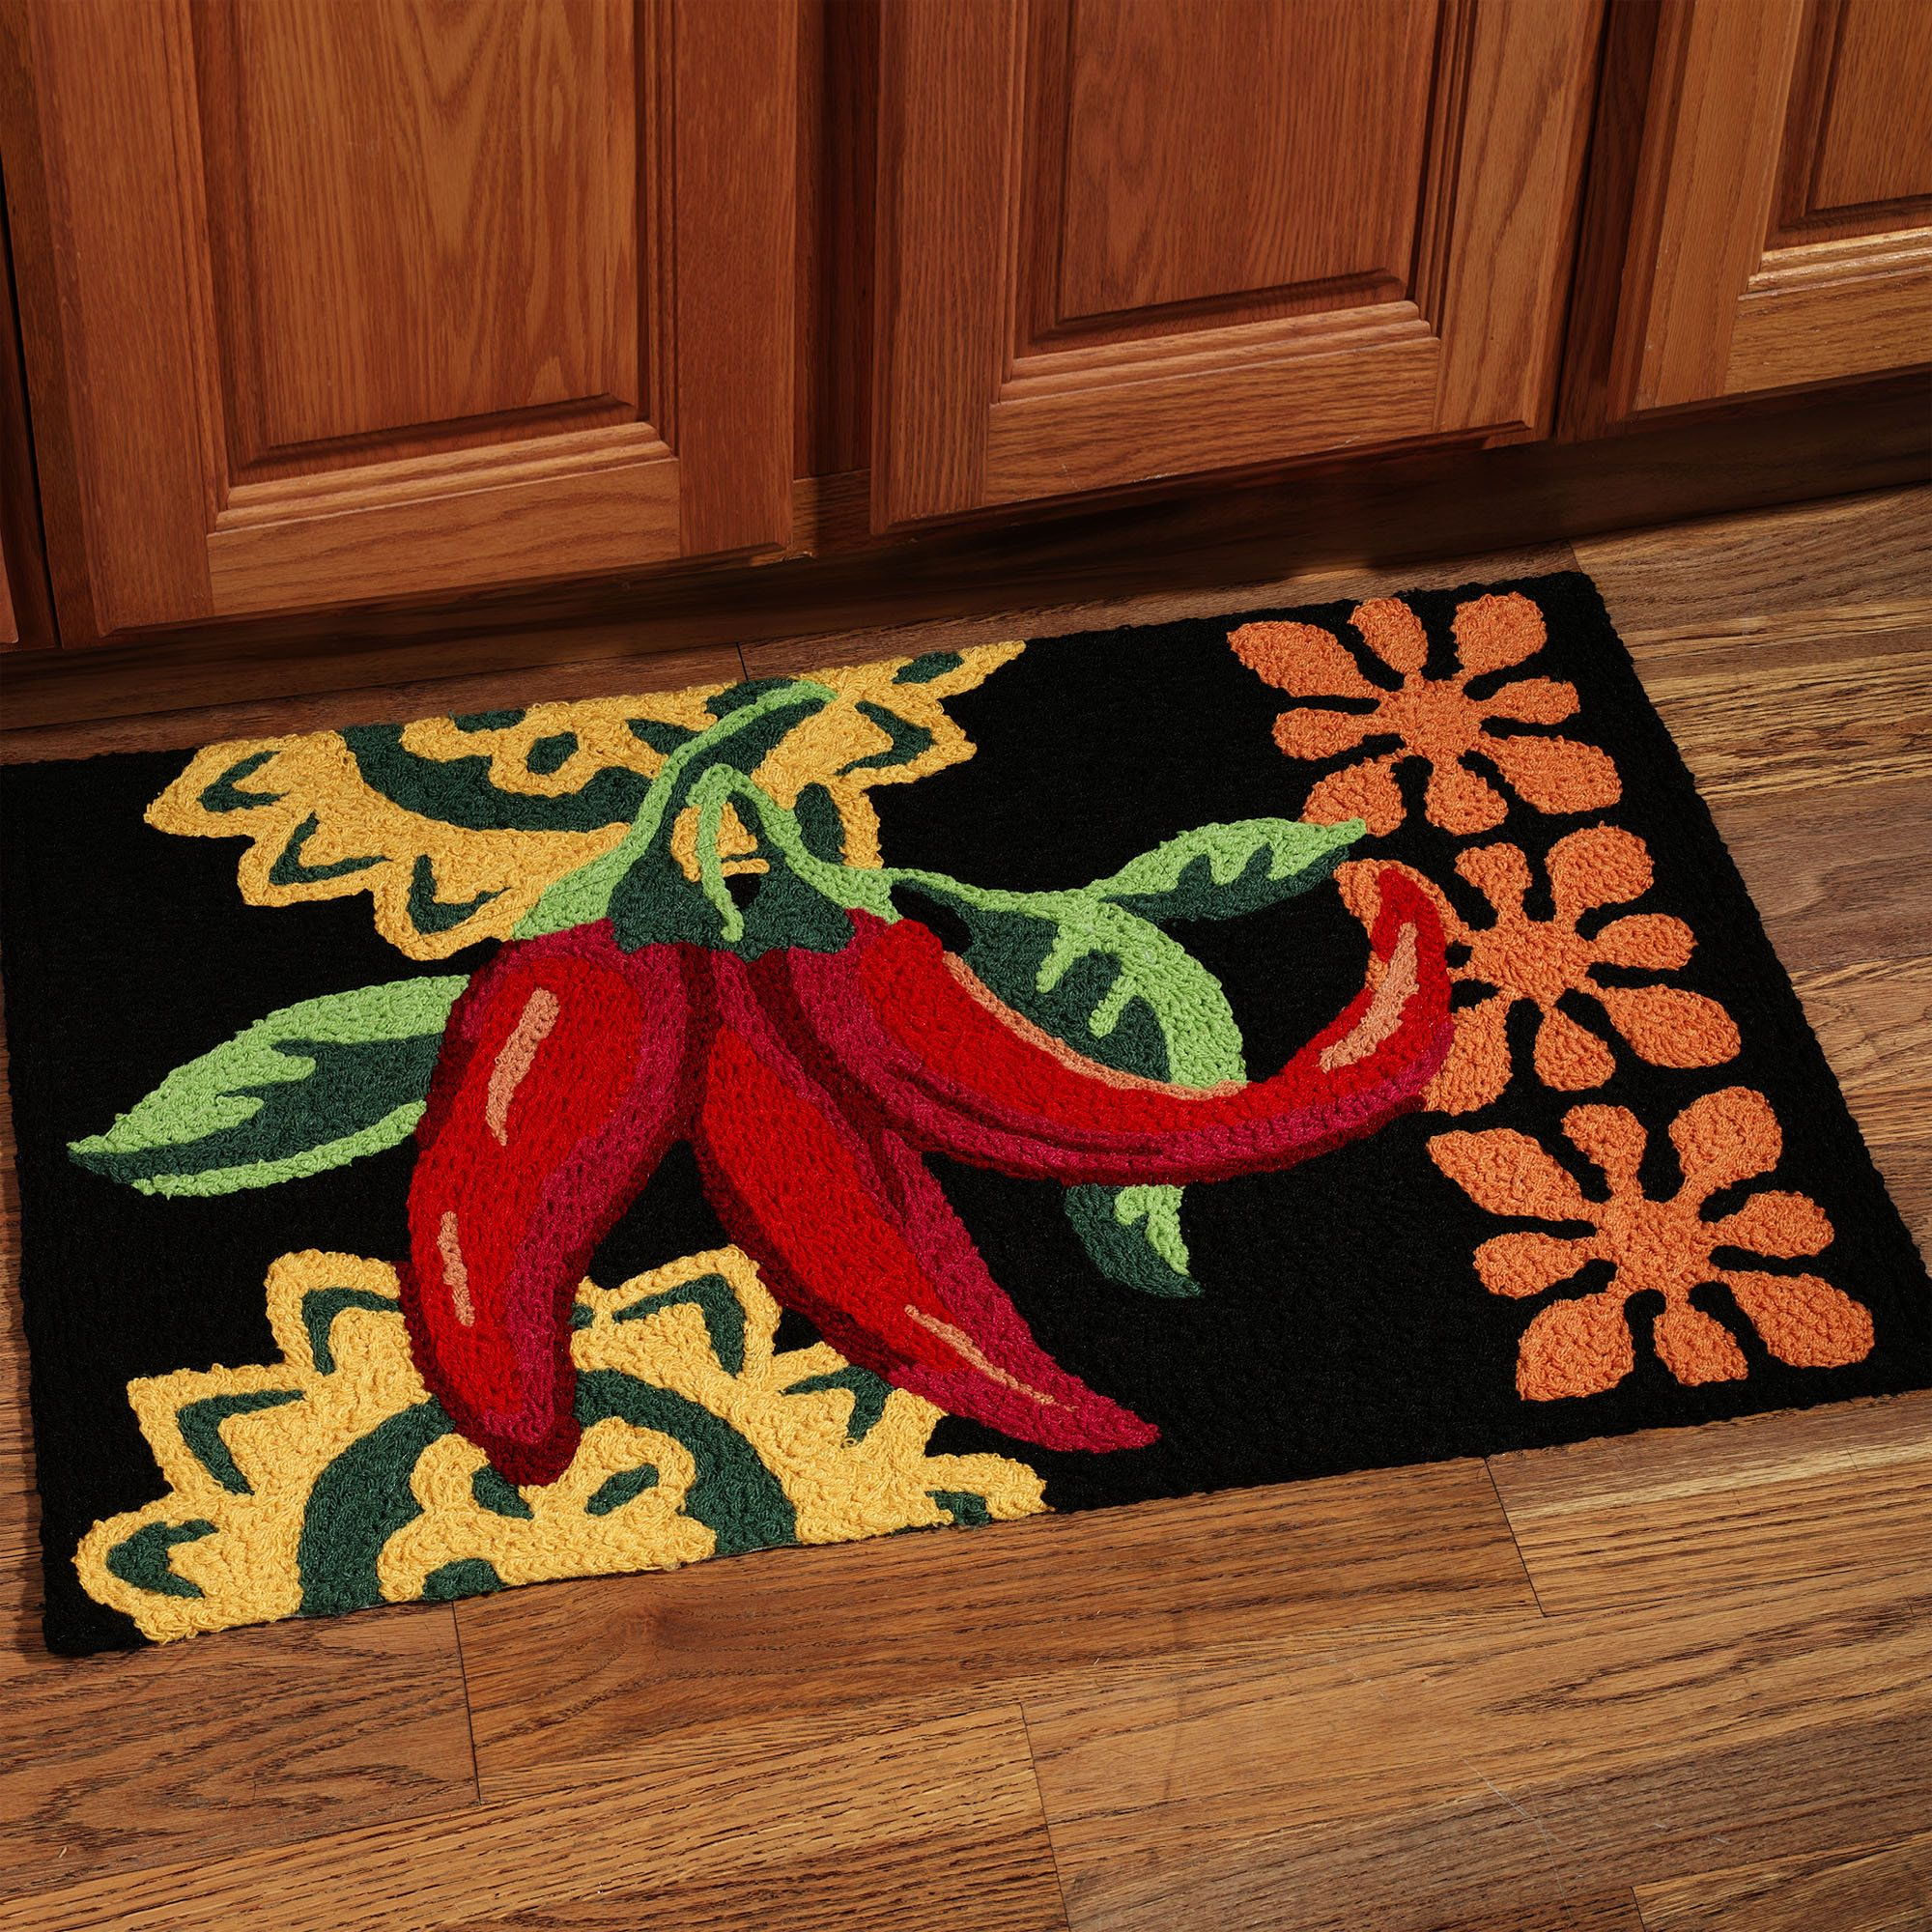 Amazing Cayenne Peppers Rug Multi Warm 19 X 29 Amazing Design